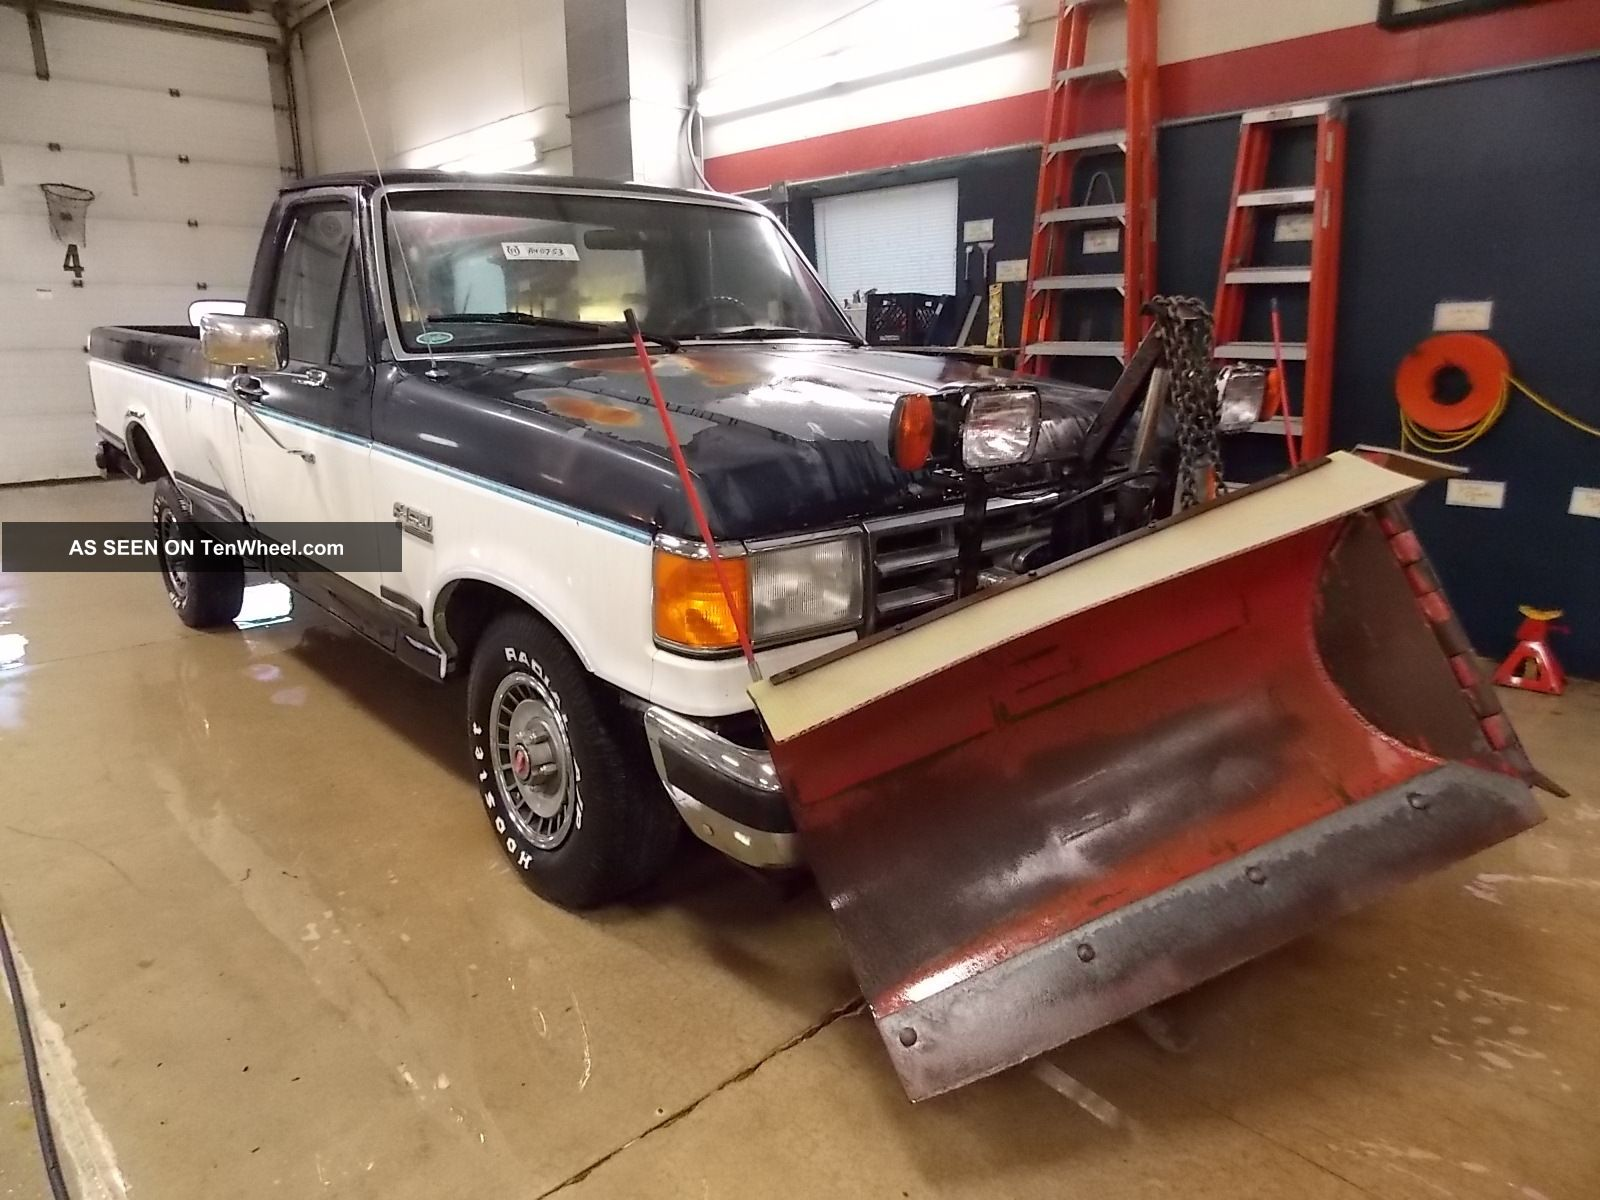 1988 Ford F150 Xl W / Snow Plow Ta40753 F-150 photo